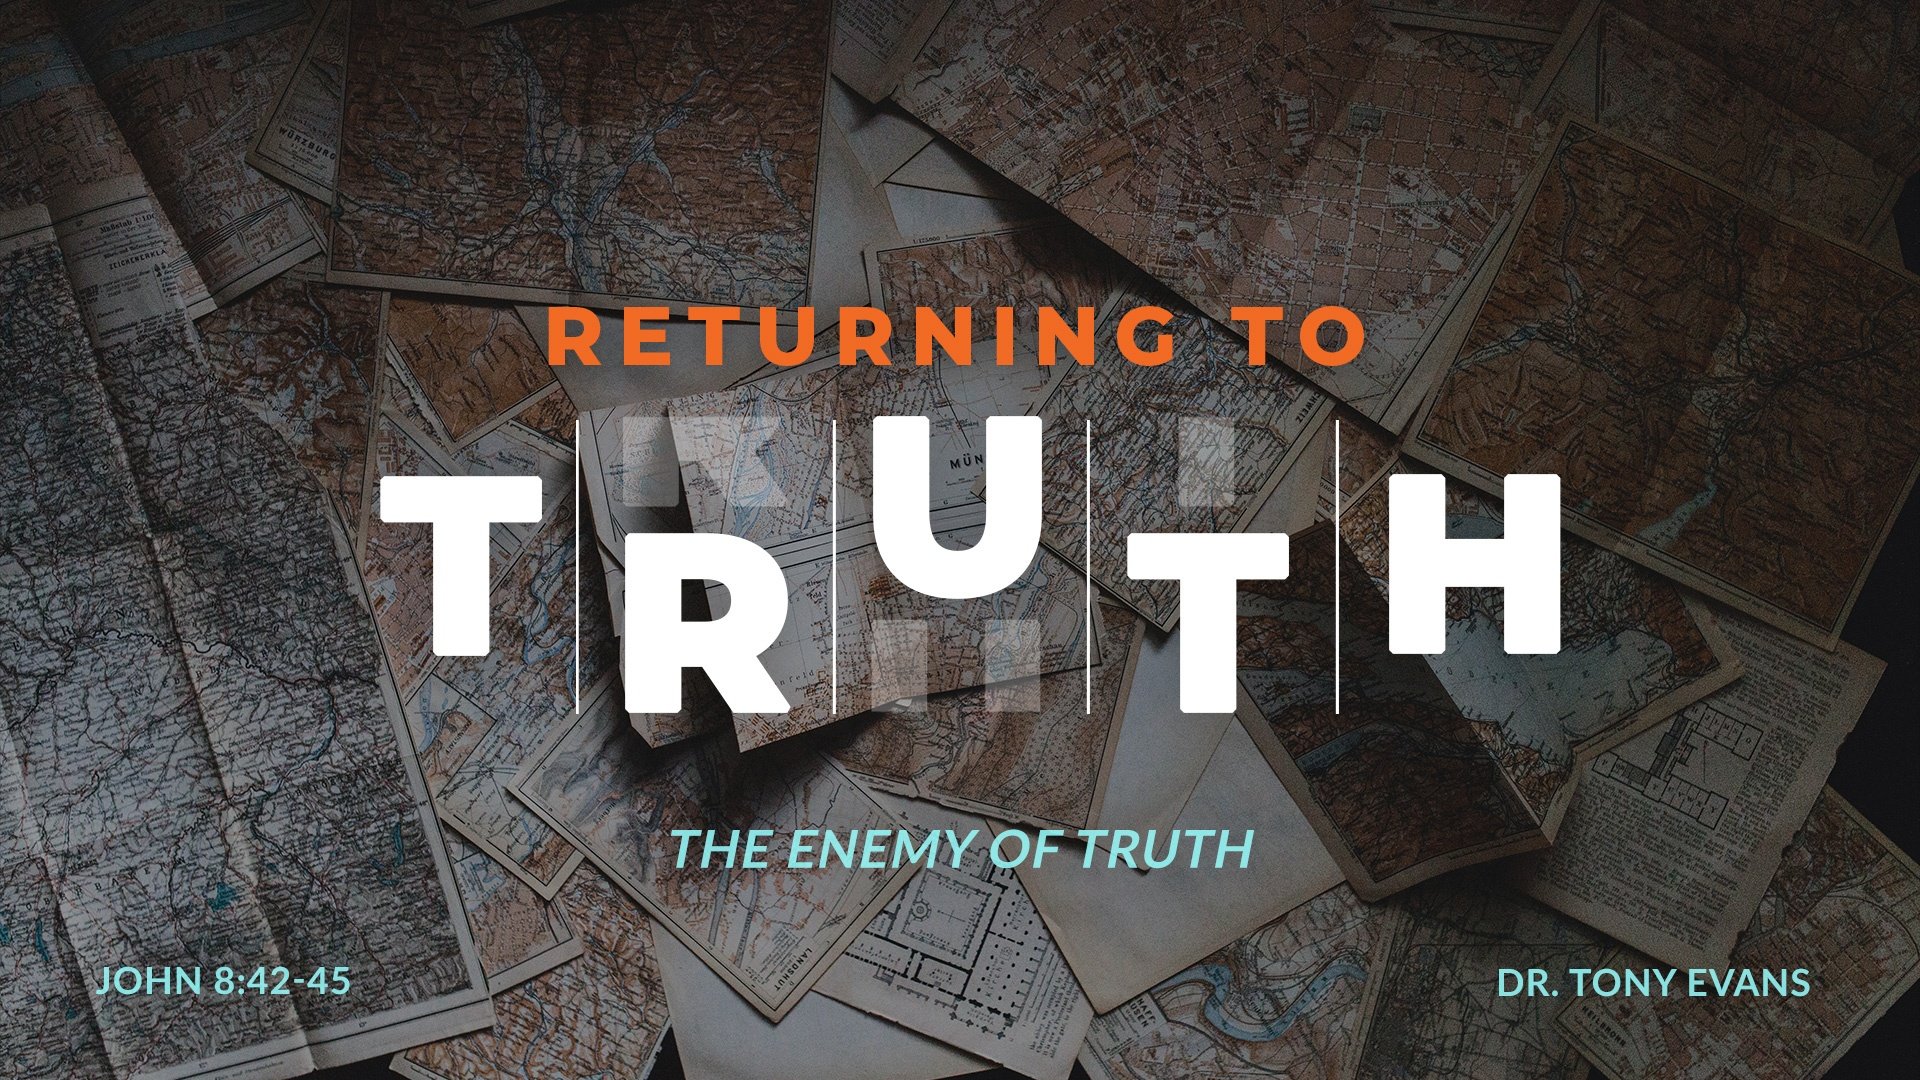 Returning to Truth: The Enemy of Truth by Dr. Tony Evans